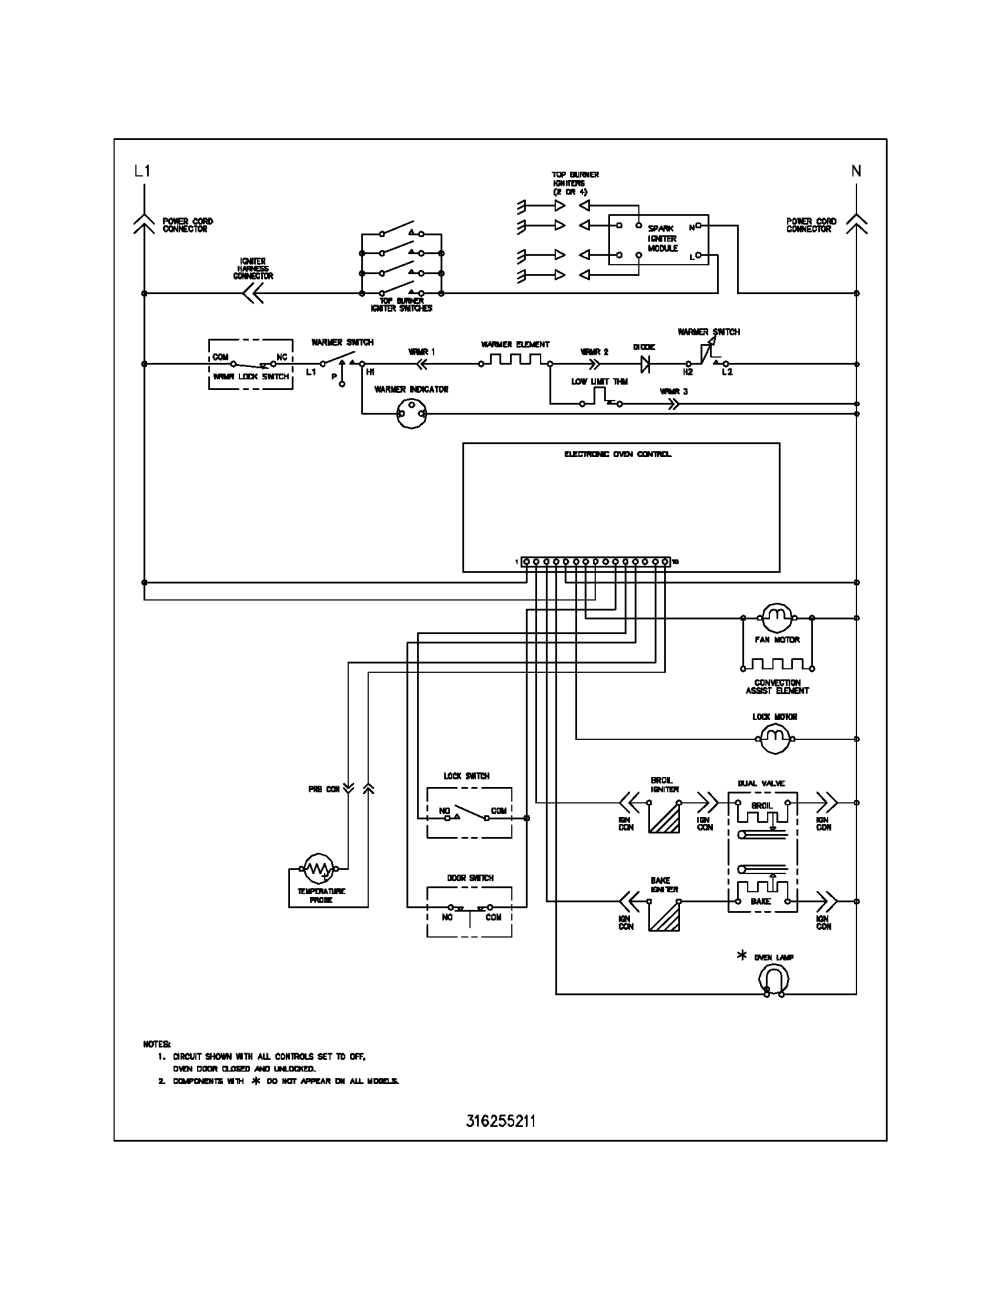 medium resolution of gas stove wiring diagrams wiring diagram reviewfrigidaire plgf389ccc gas range timer stove clocks and appliance kenmore